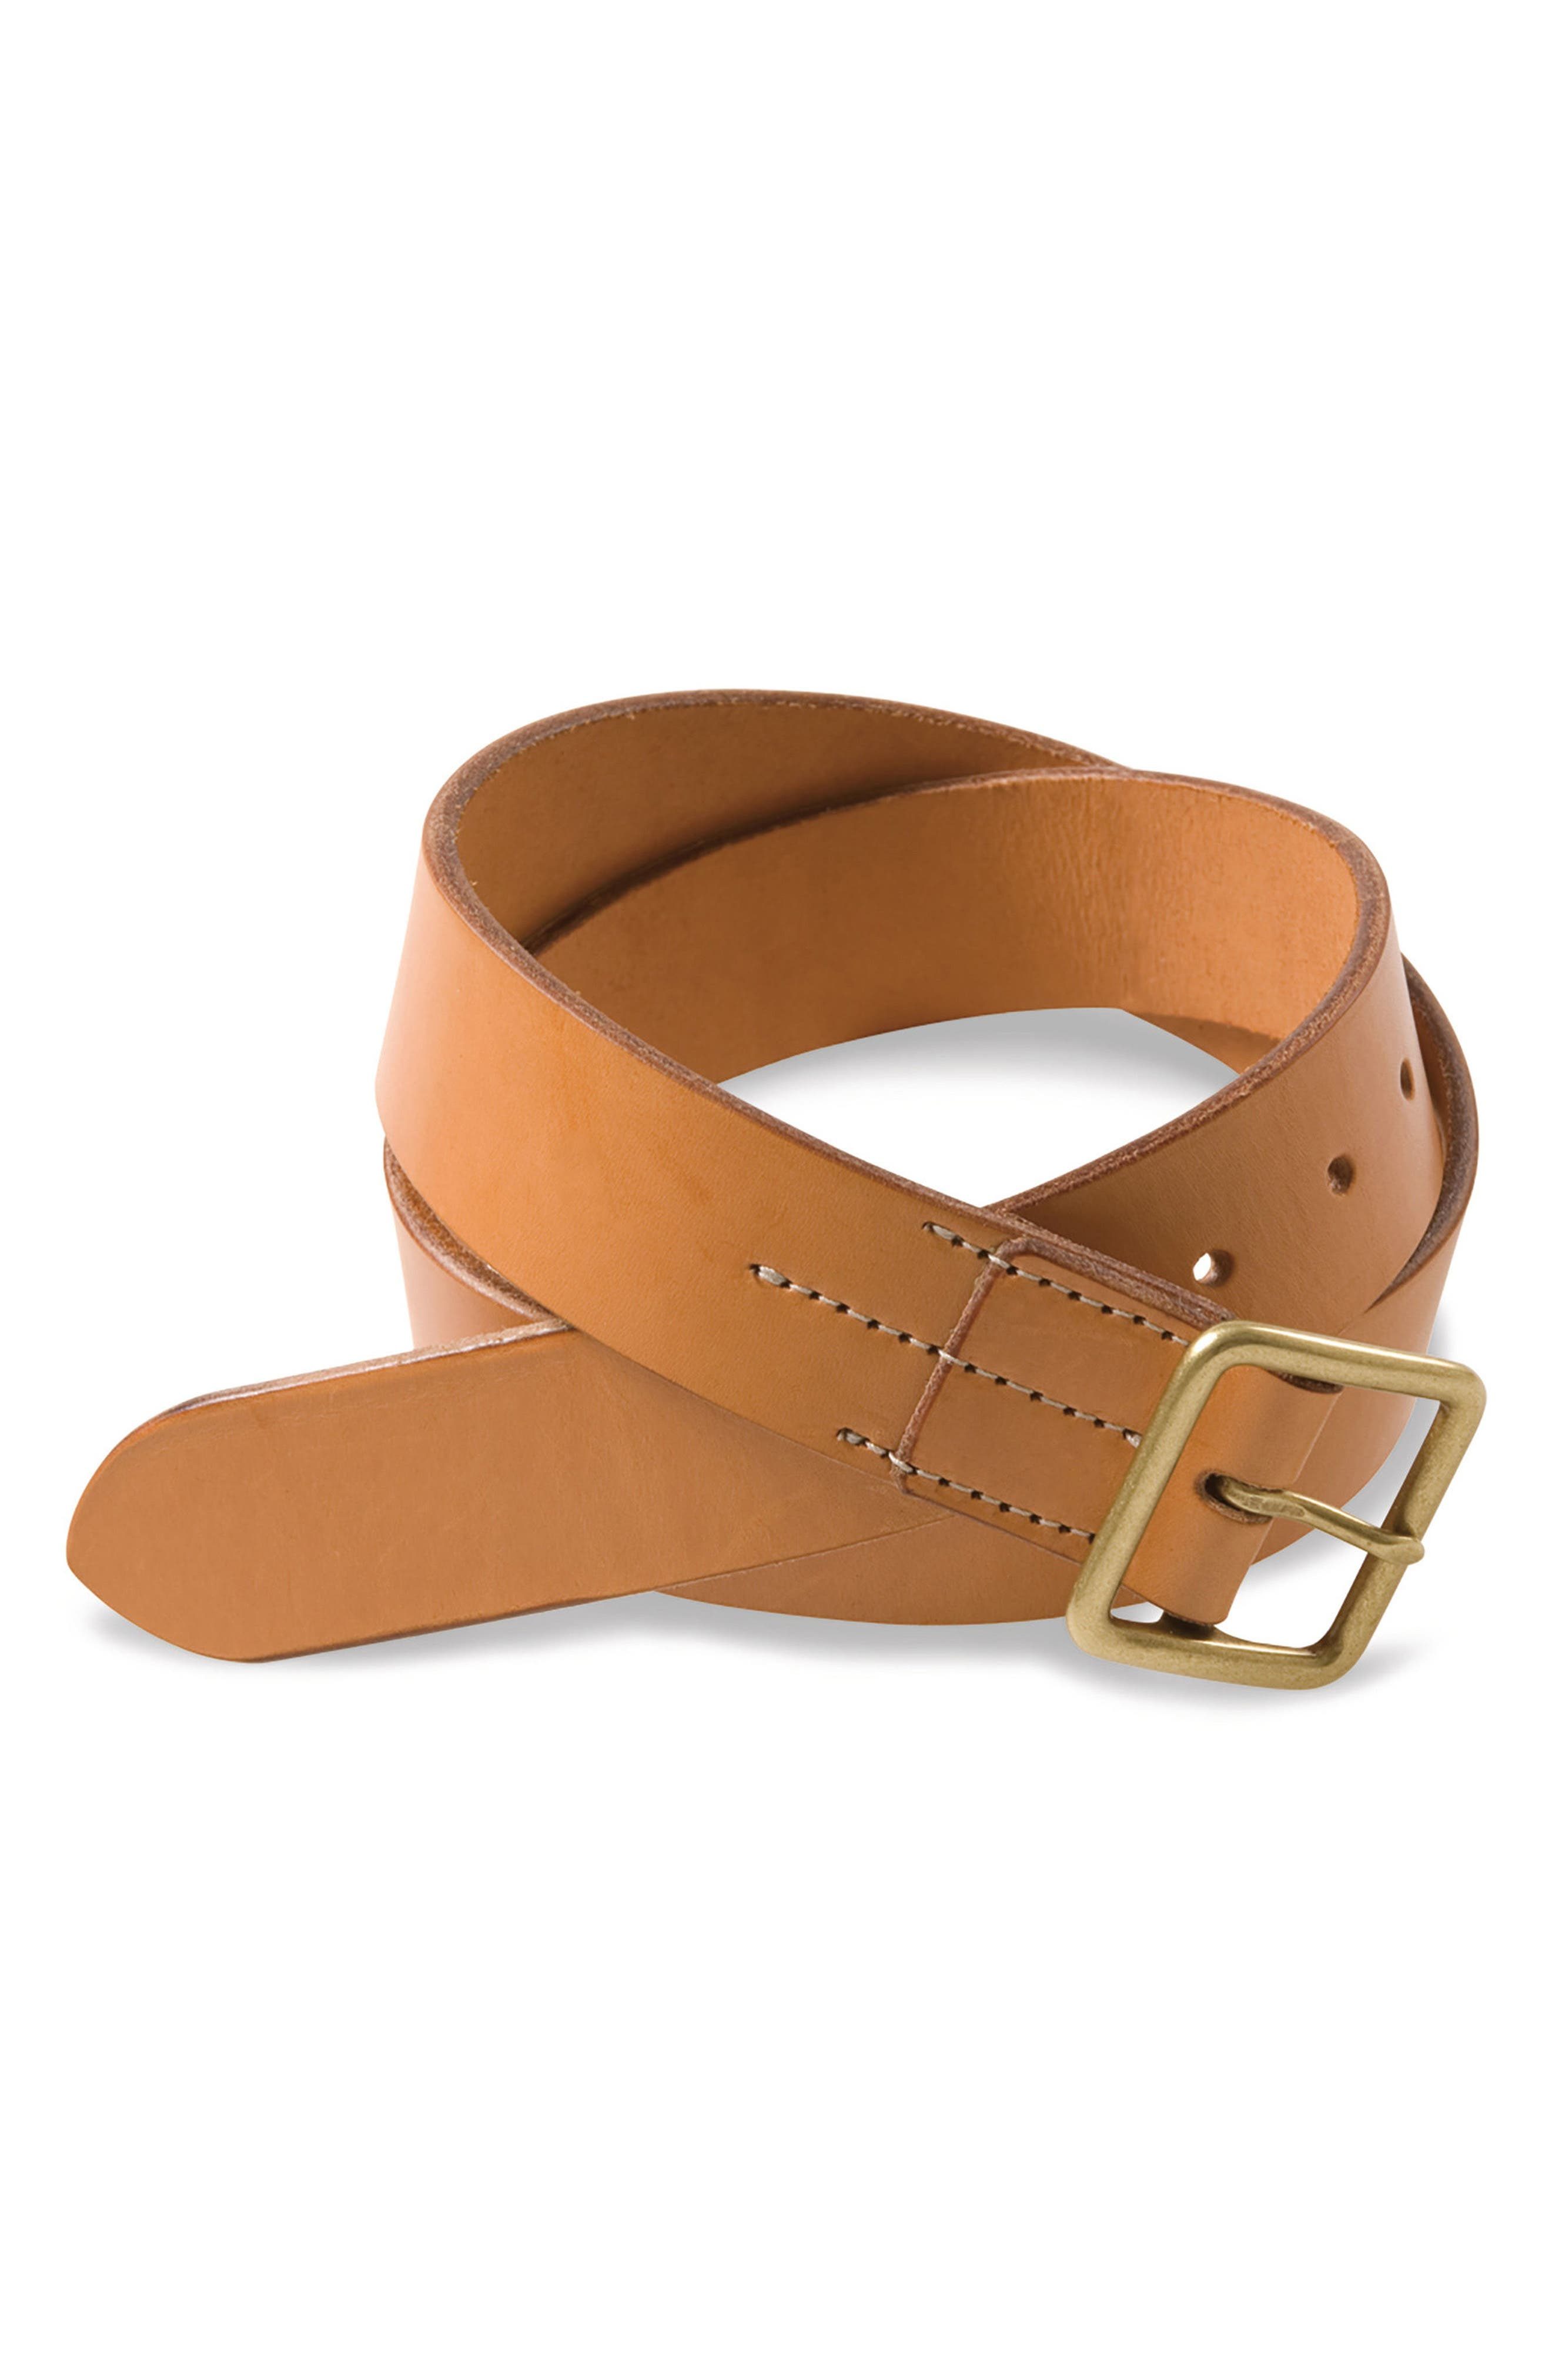 RED WING Leather Belt in Neutral English Bridle